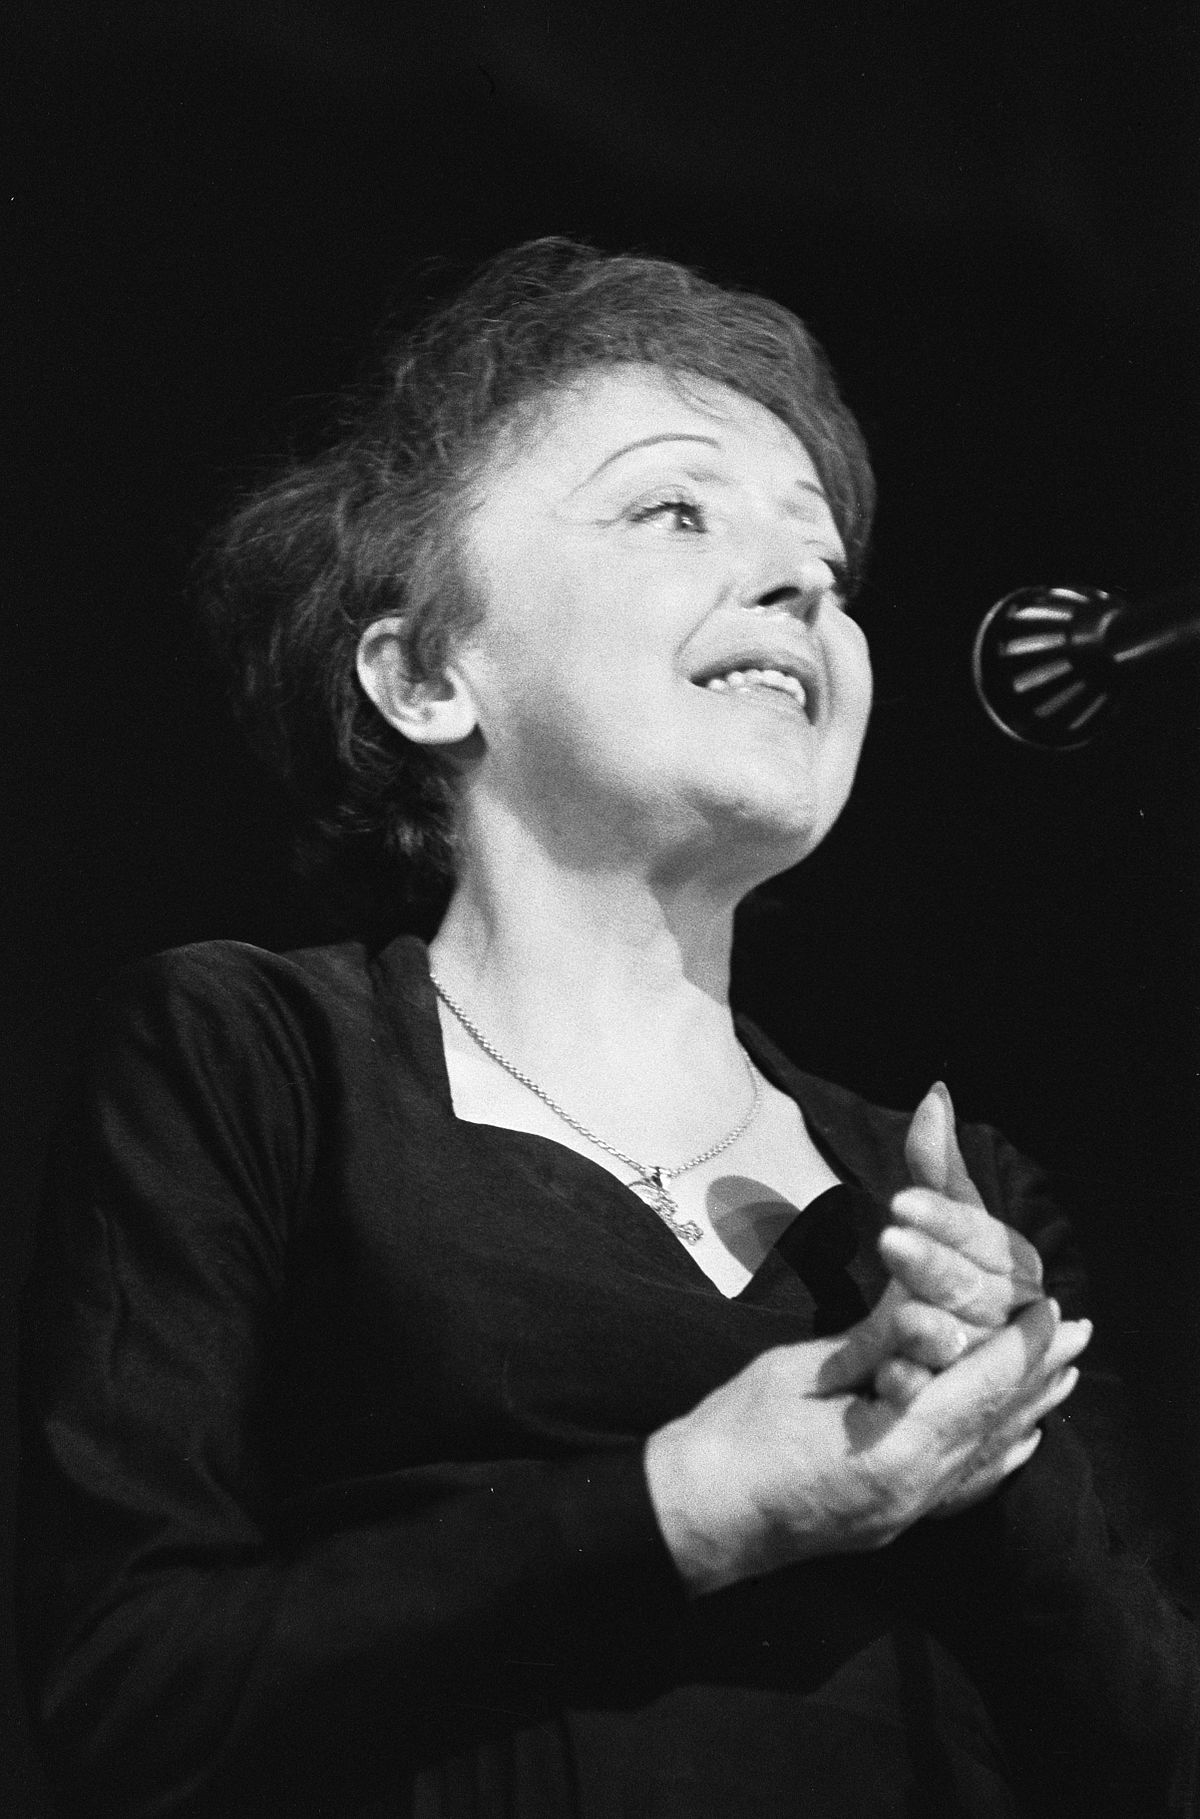 <b>Эдит Пиаф</b> - Édith Piaf - qwerty.wiki